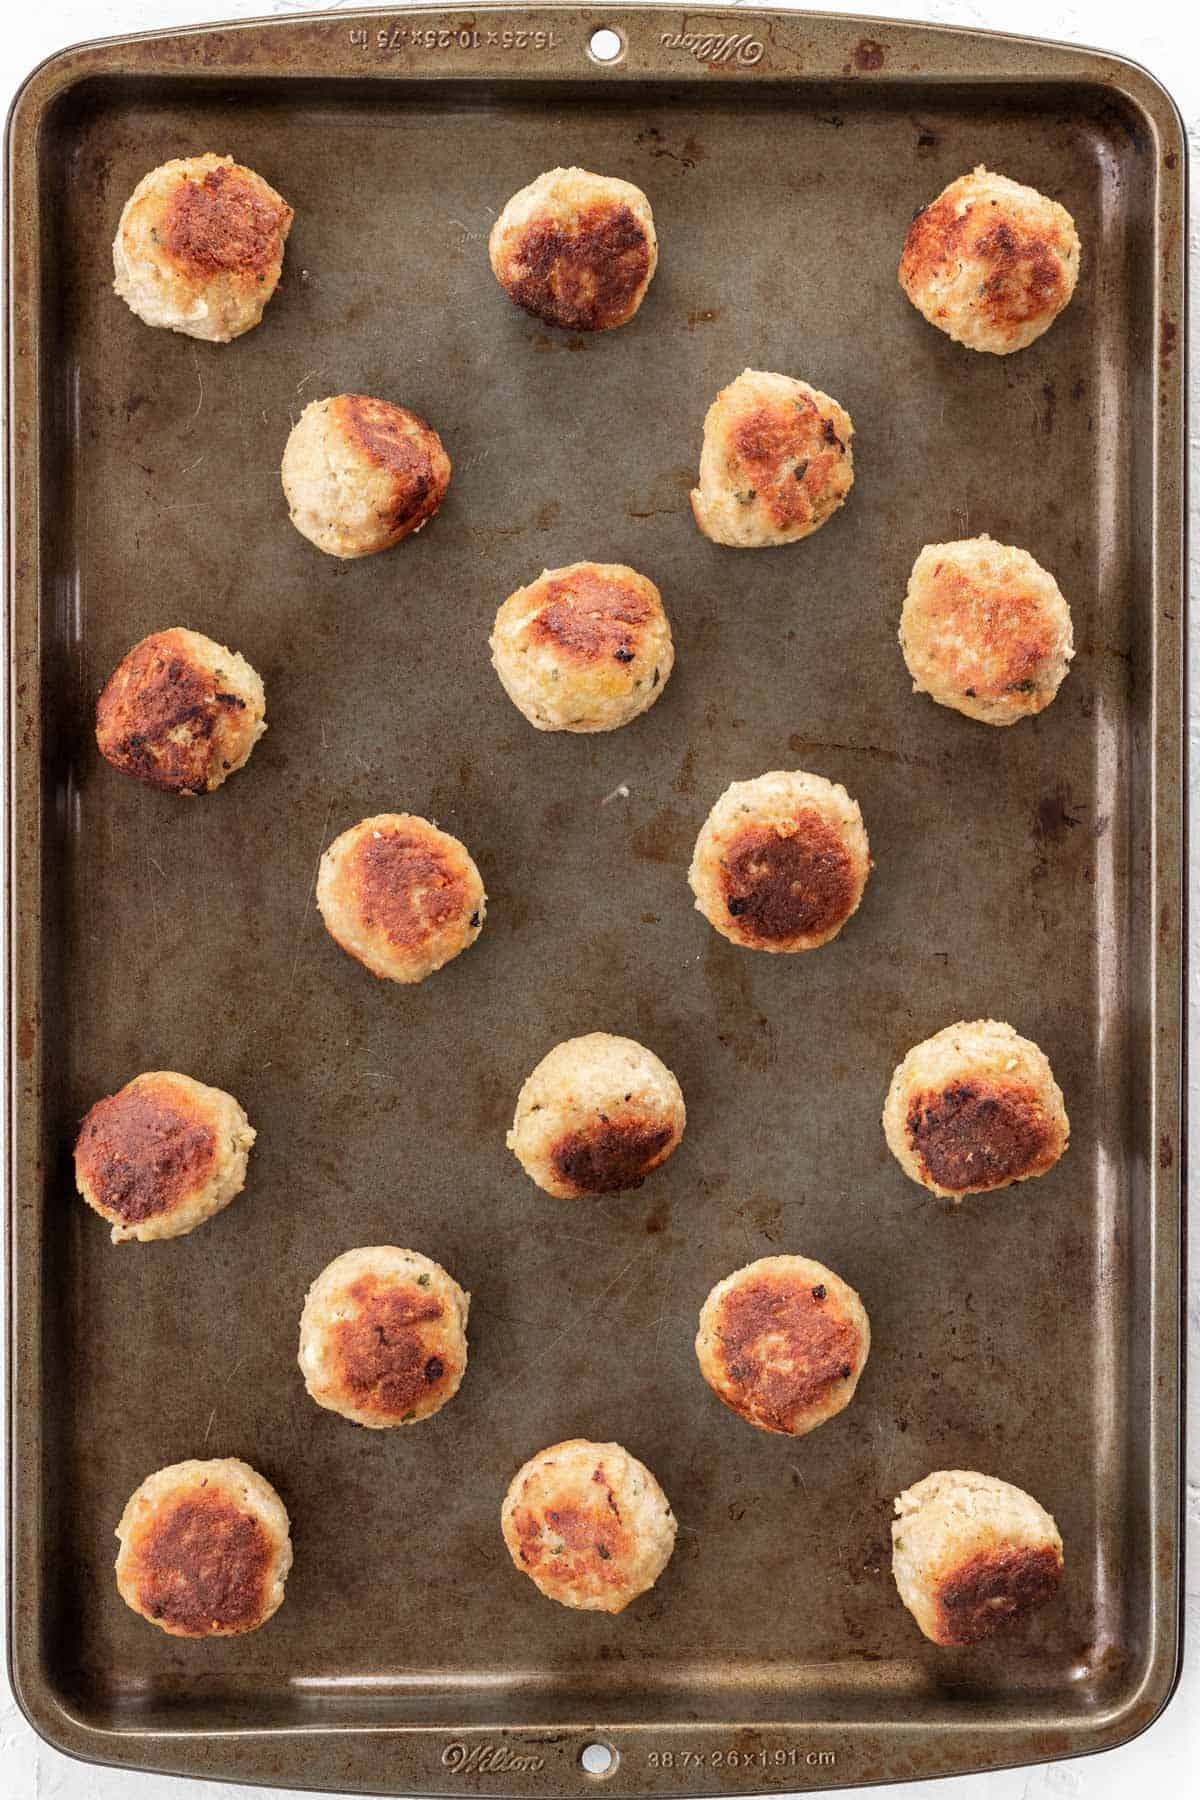 Browned meatballs on a baking sheet.